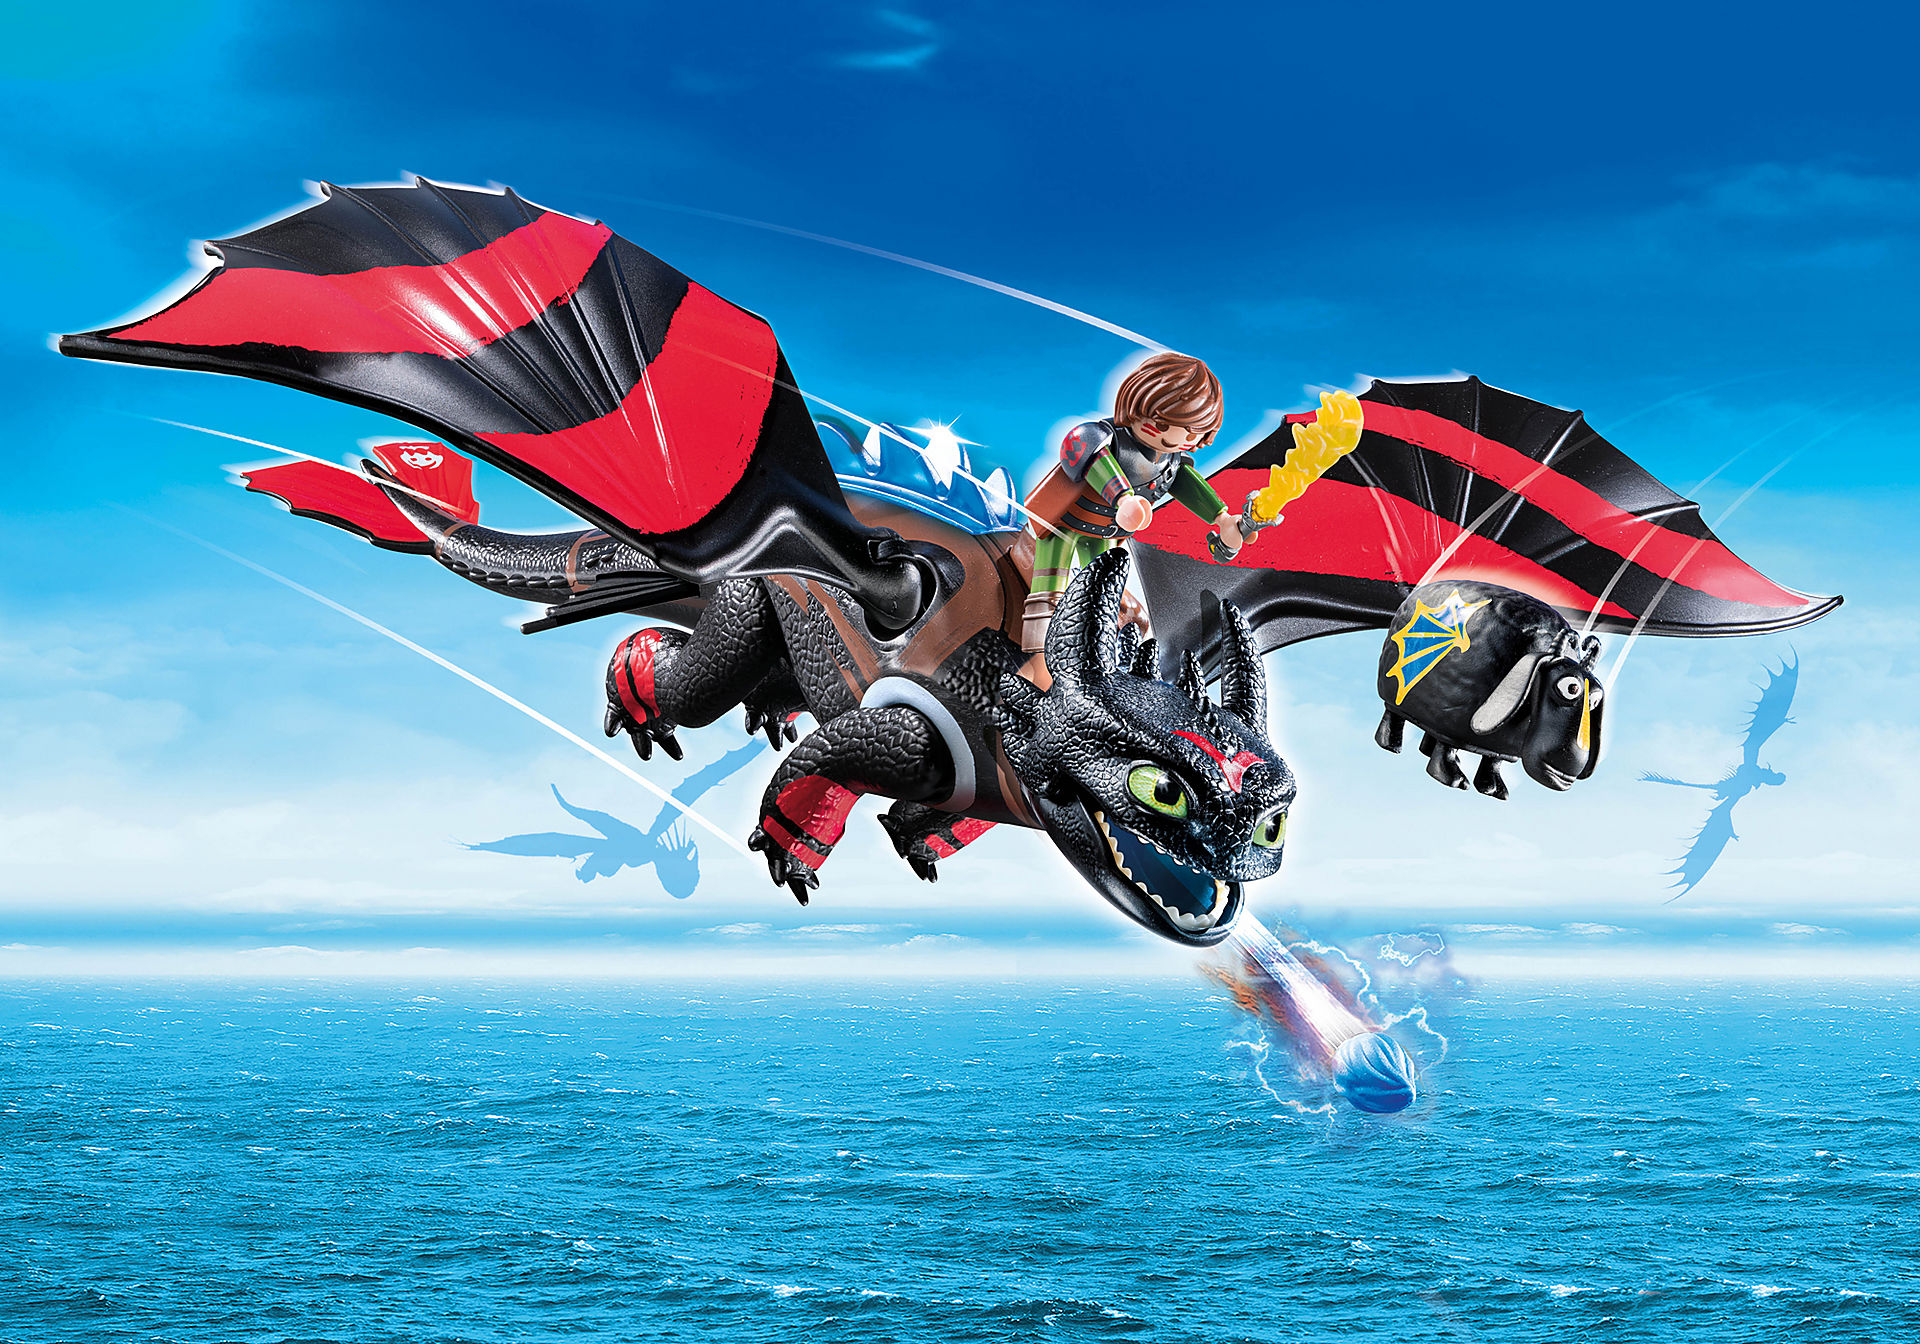 70727 Dragon Racing: Hiccup and Toothless zoom image1